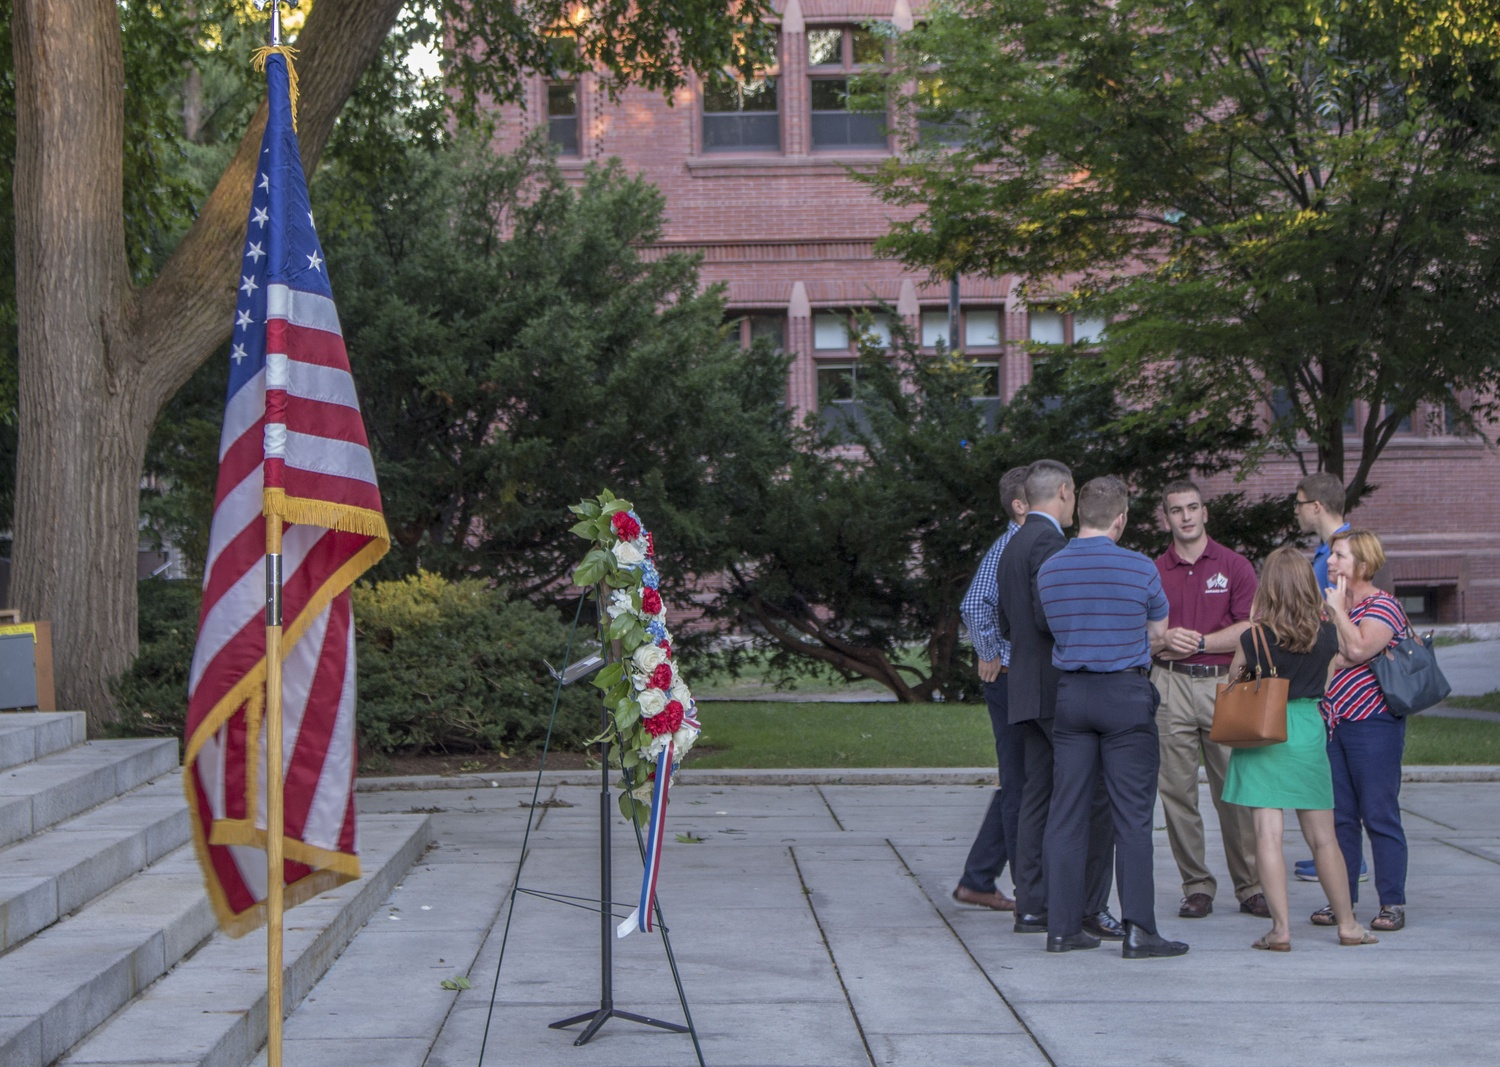 Harvard ROTC members and their families, along with students and faculty, gather for a 9/11 memorial at the Memorial Church steps Sunday evening. The event, which featured a speech by Dean of the College Rakesh Khurana and a wreath laying ceremony by Harvard ROTC, was in remembrance of the 15th anniversary.